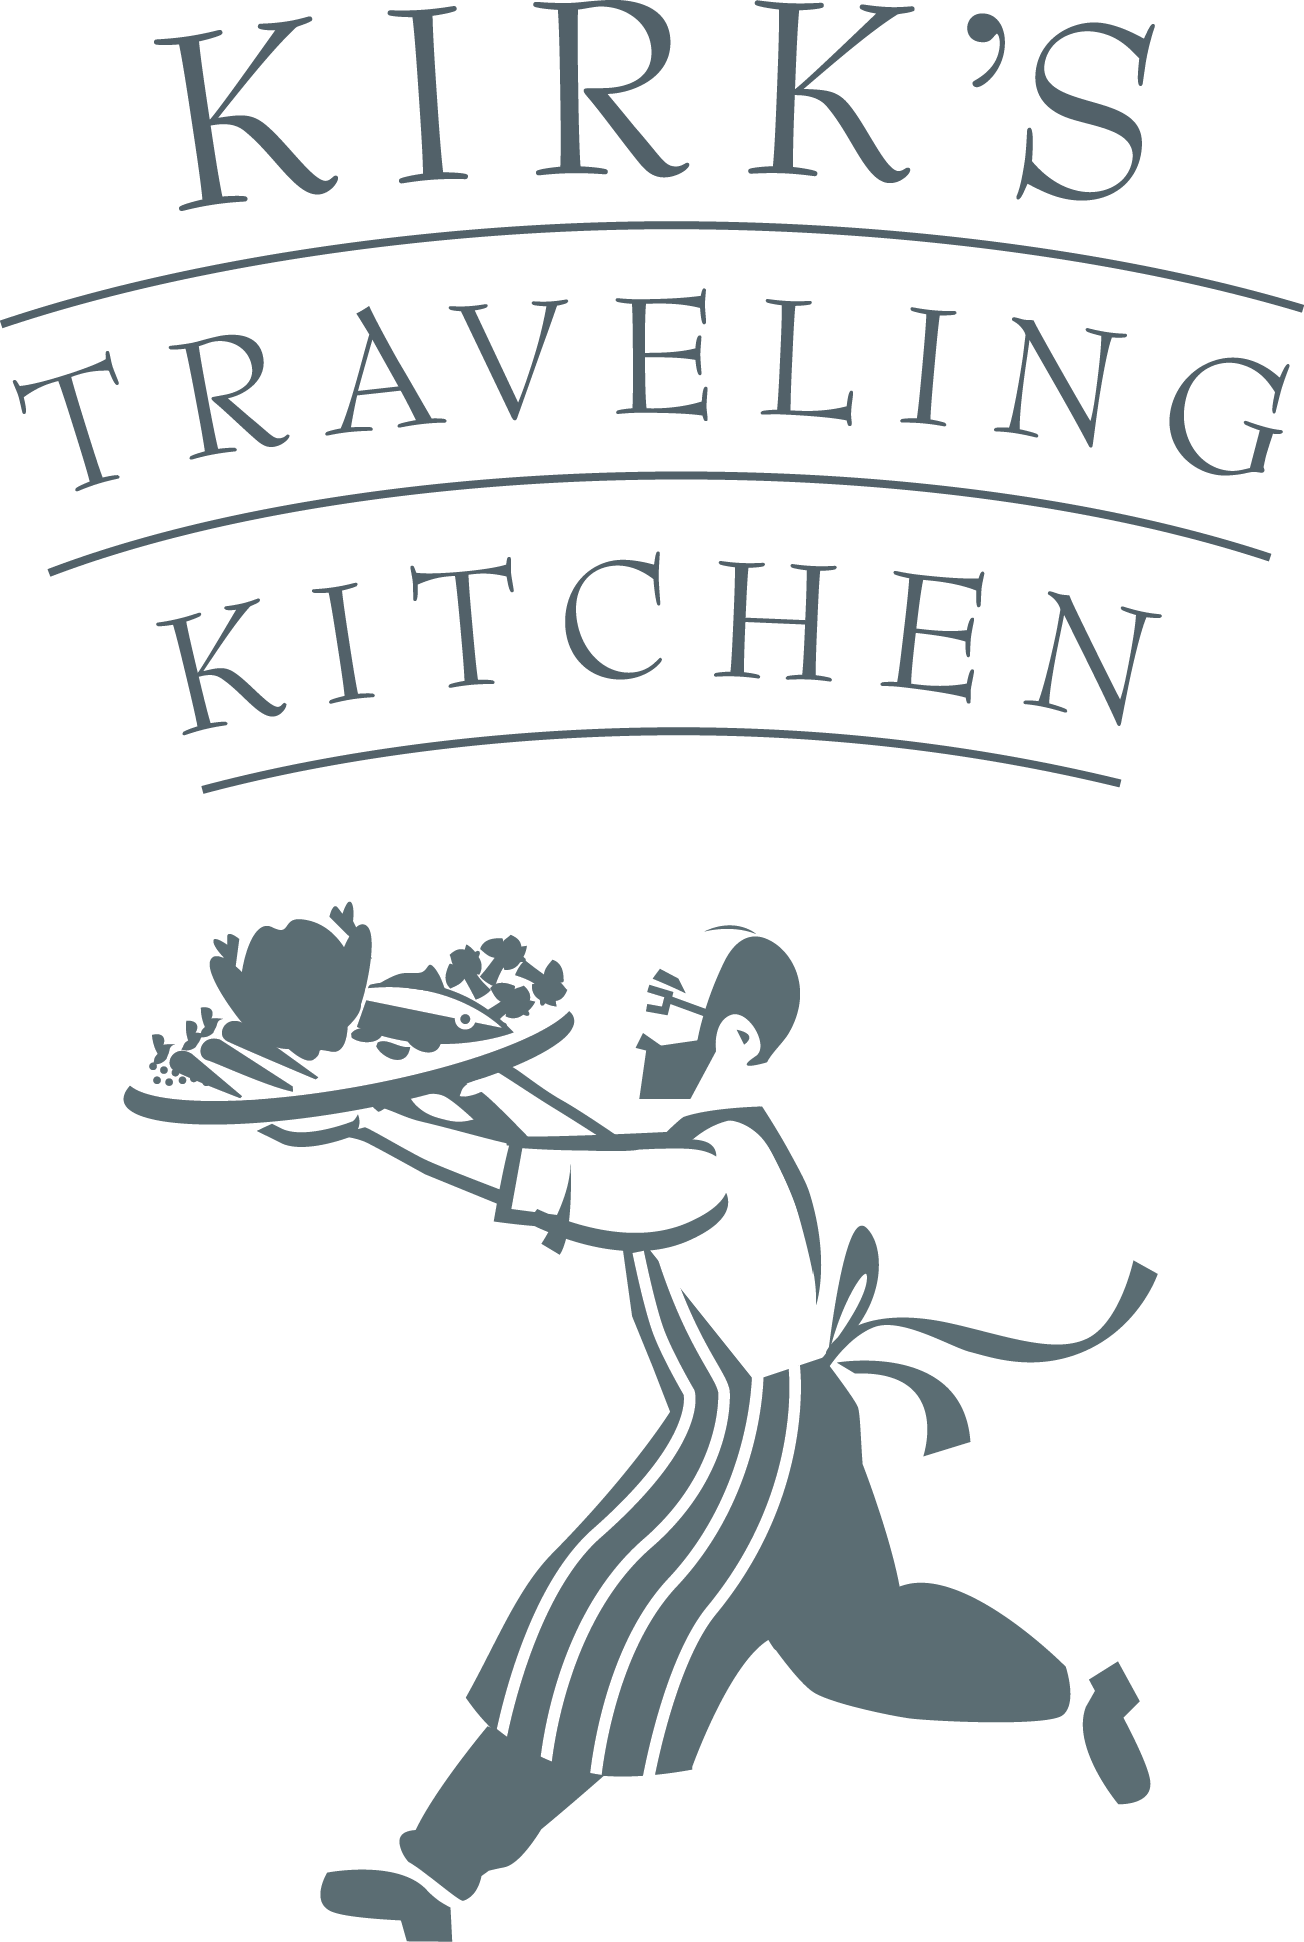 Kirk's Traveling Kitchen